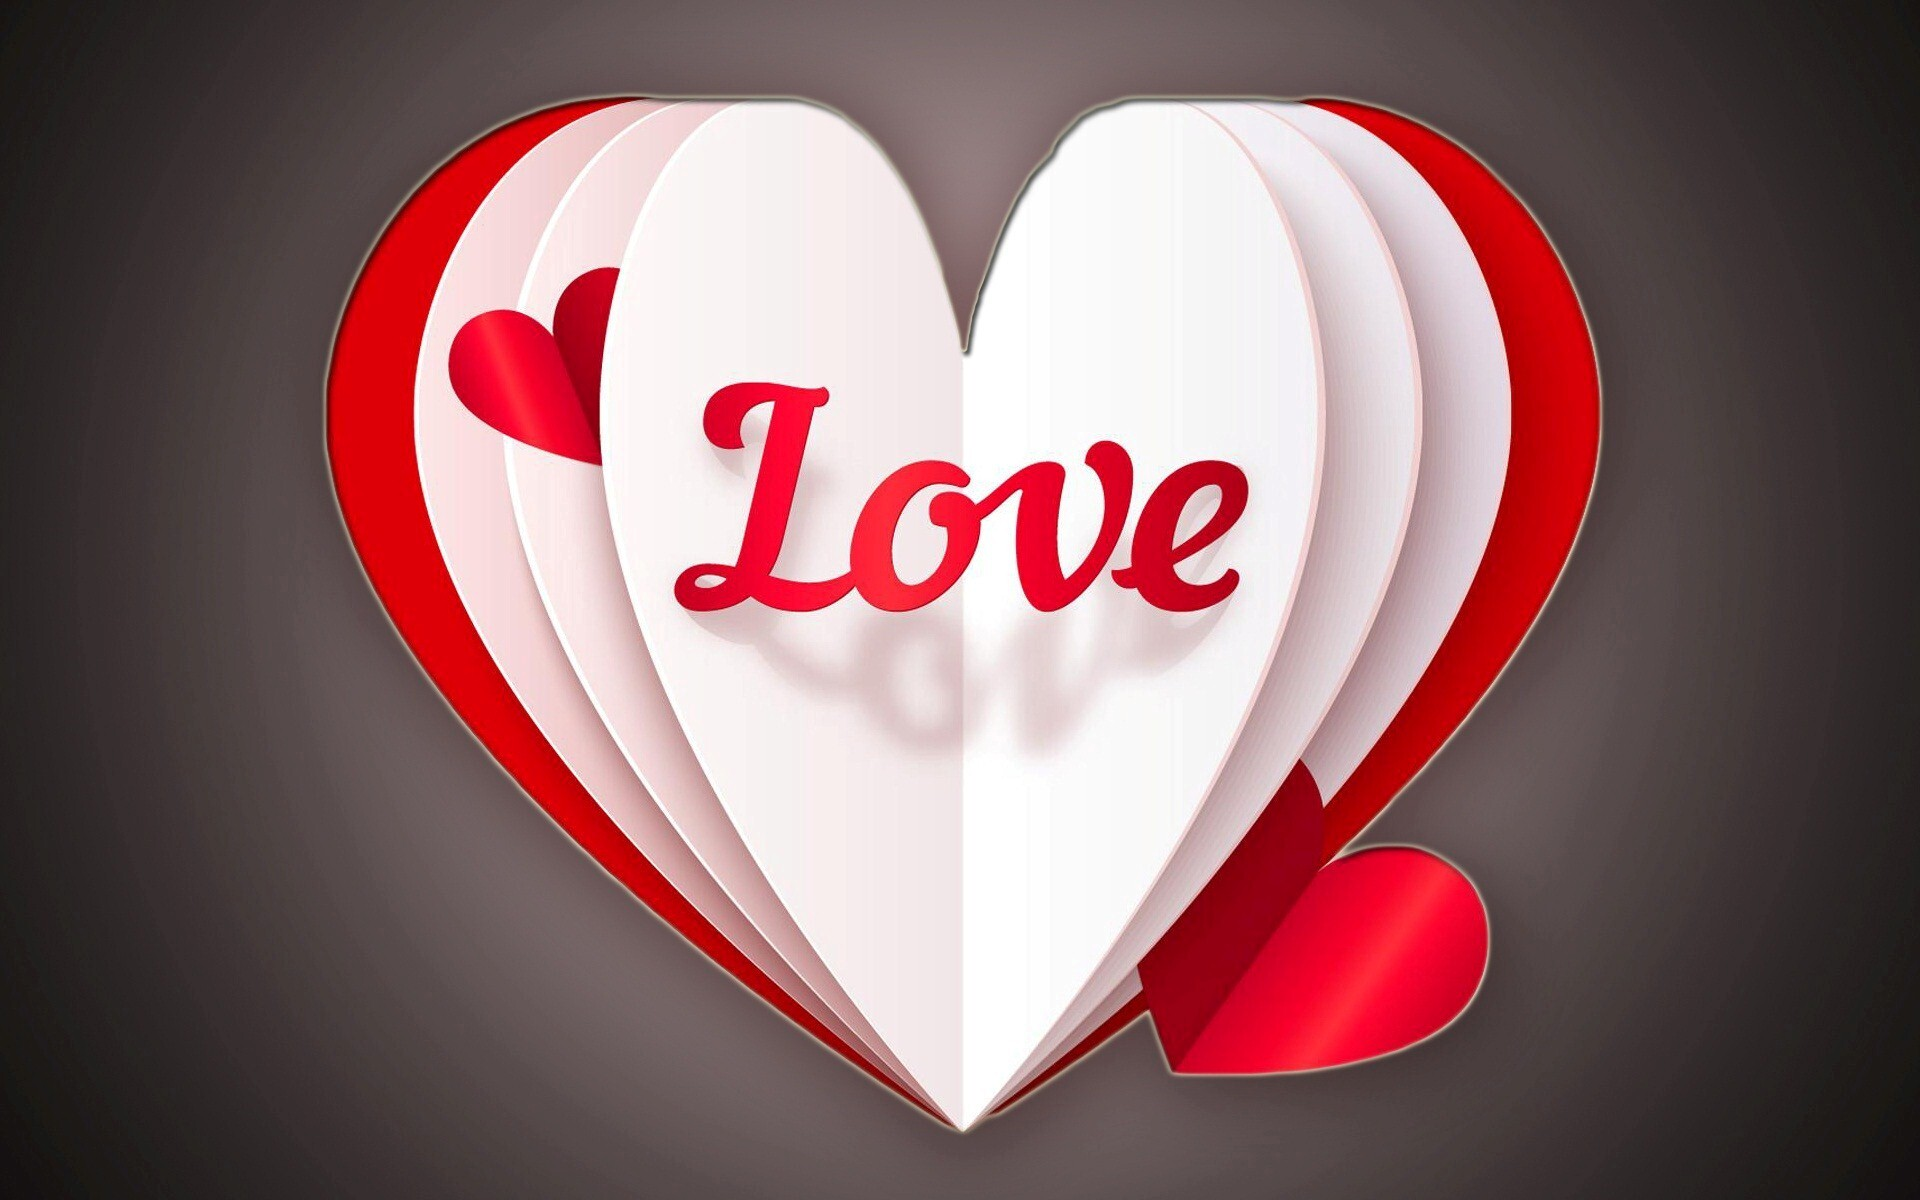 Wallpaper download in love - Love Heart Wallpapers